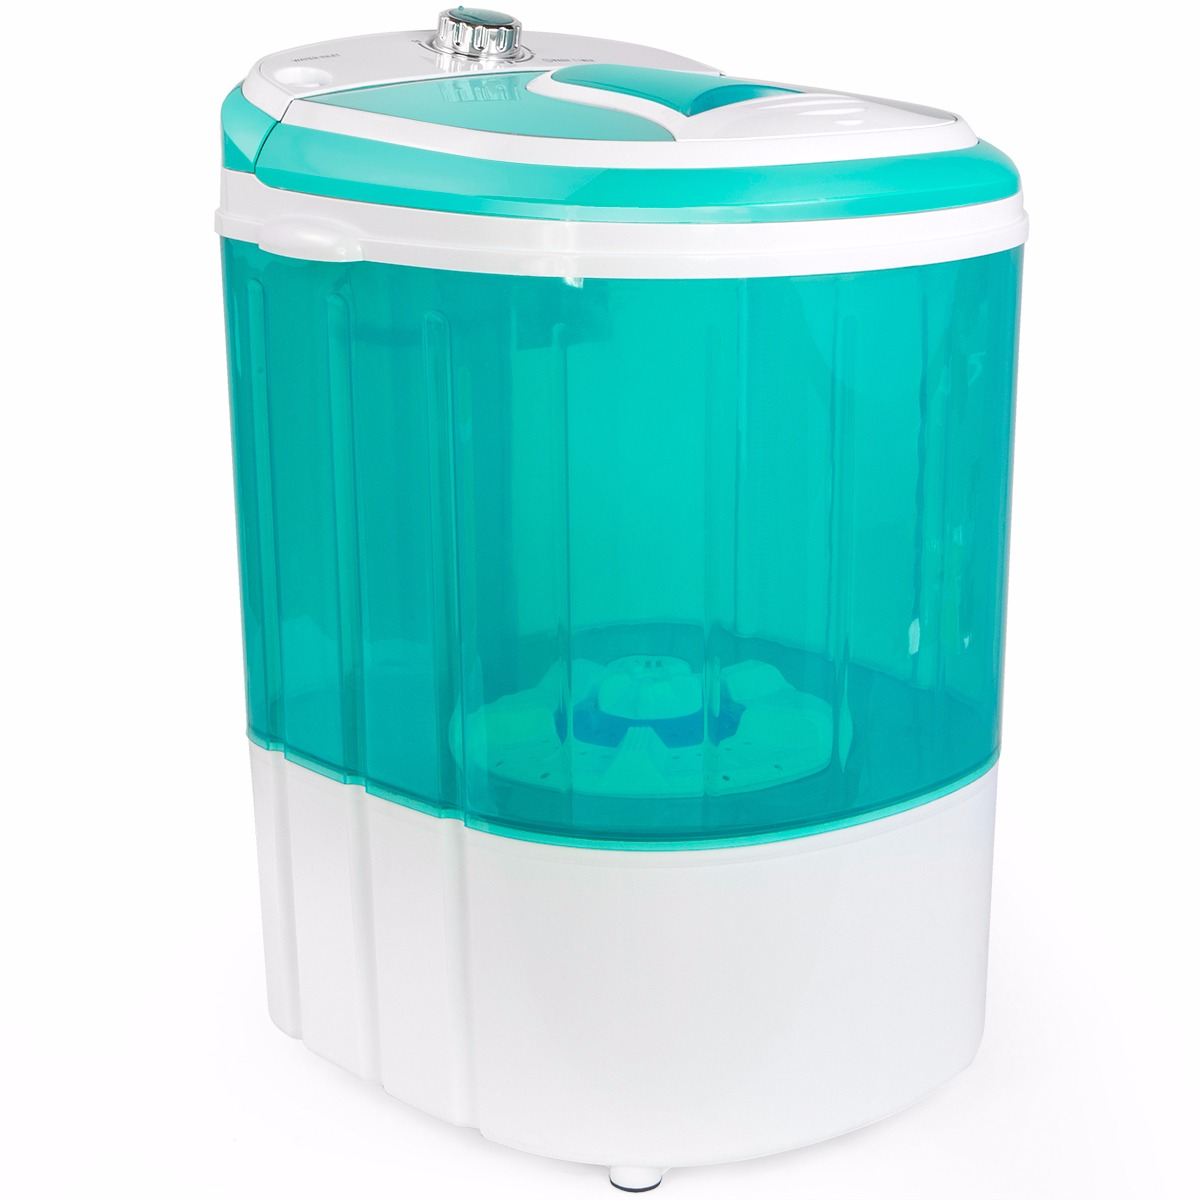 Portable Mini Washing Machine Can Wash Load For R V Apartment